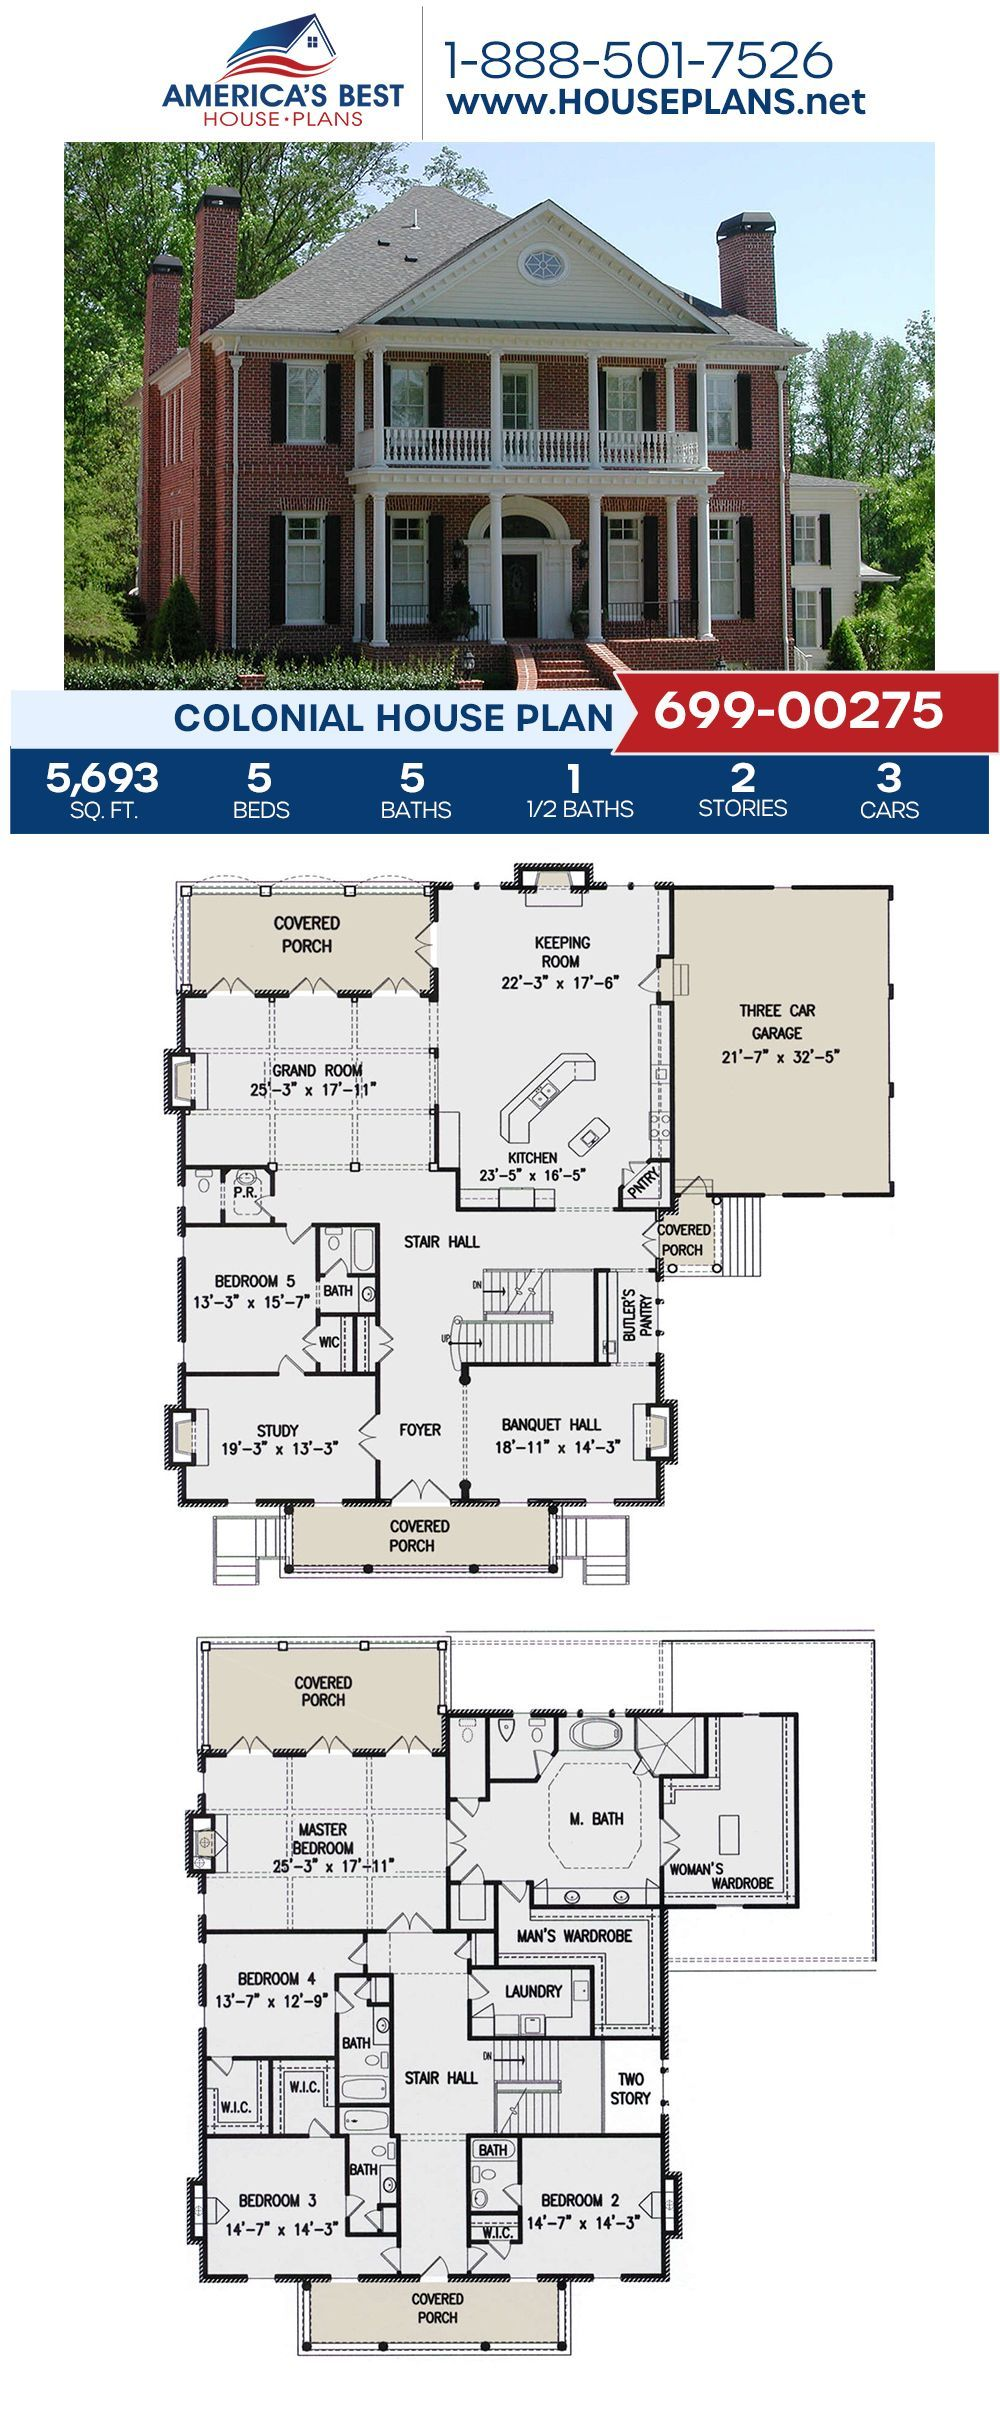 Colonial House Plan 699 00275 Colonial House Plan I 2020